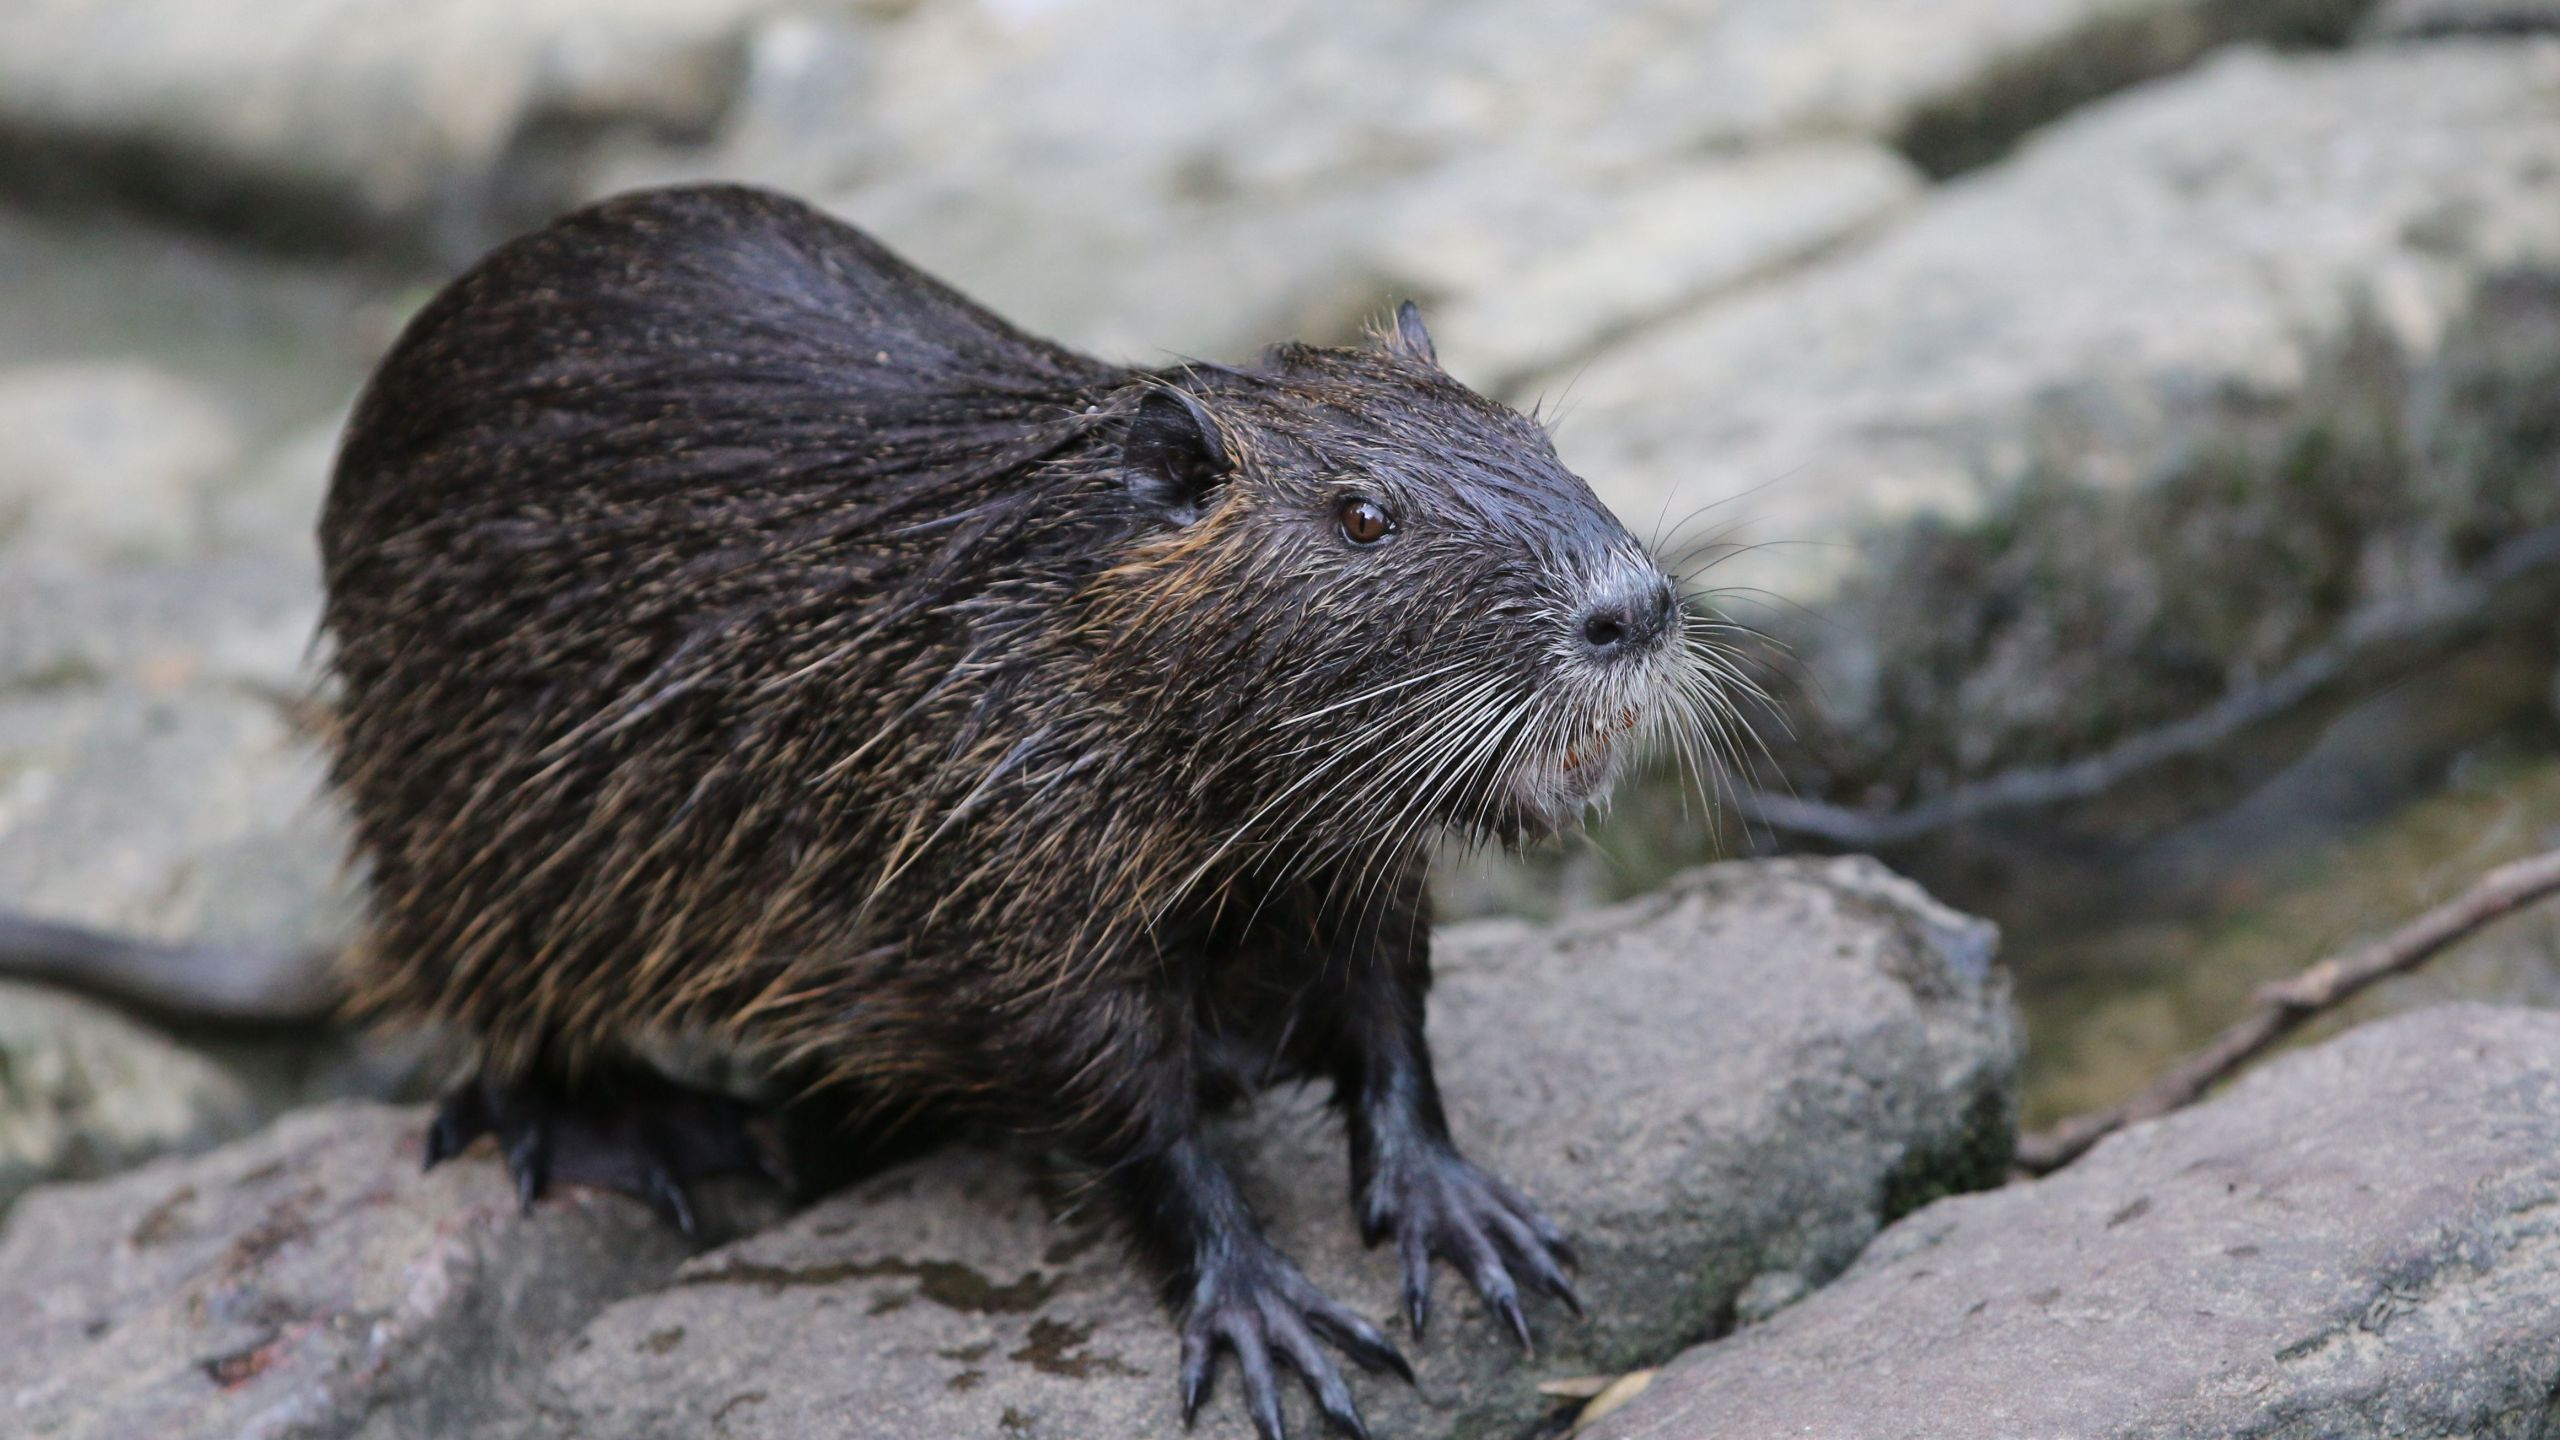 A nutria is pictured in a park in Frankfurt, western Germany, on June 9, 2018. (Credit: Yann Schreiber/AFP/Getty Images)